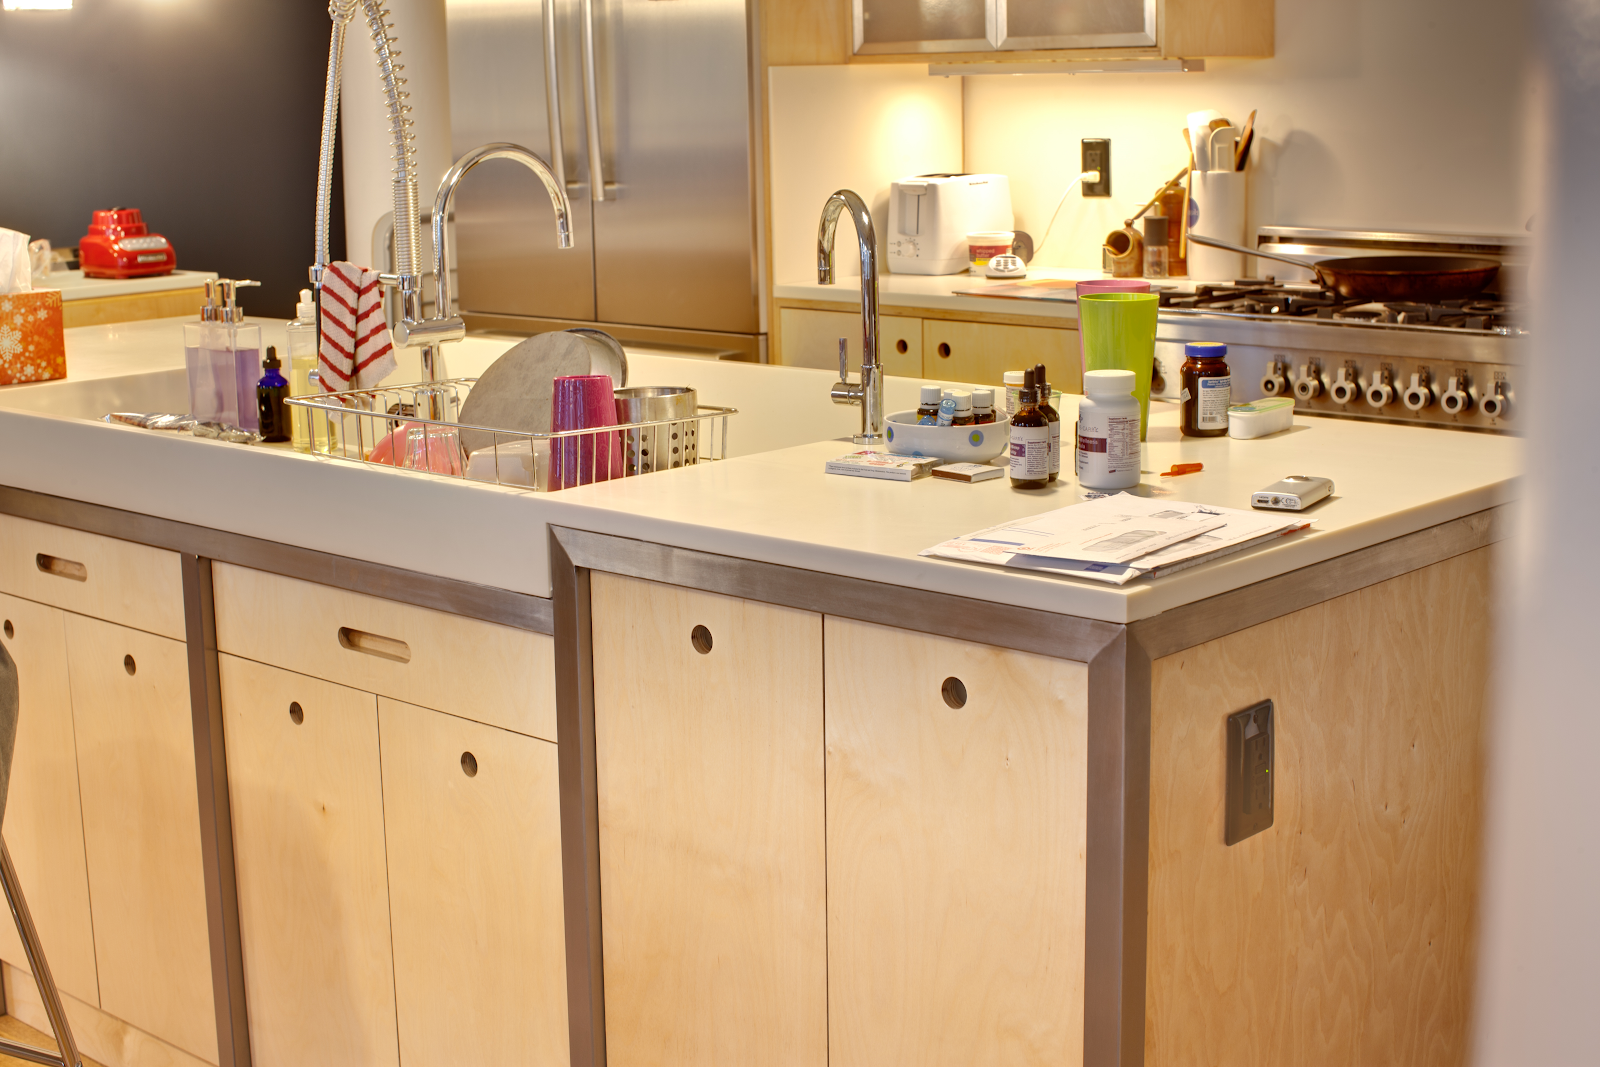 What Renovations Have Been Made to the Kitchen?